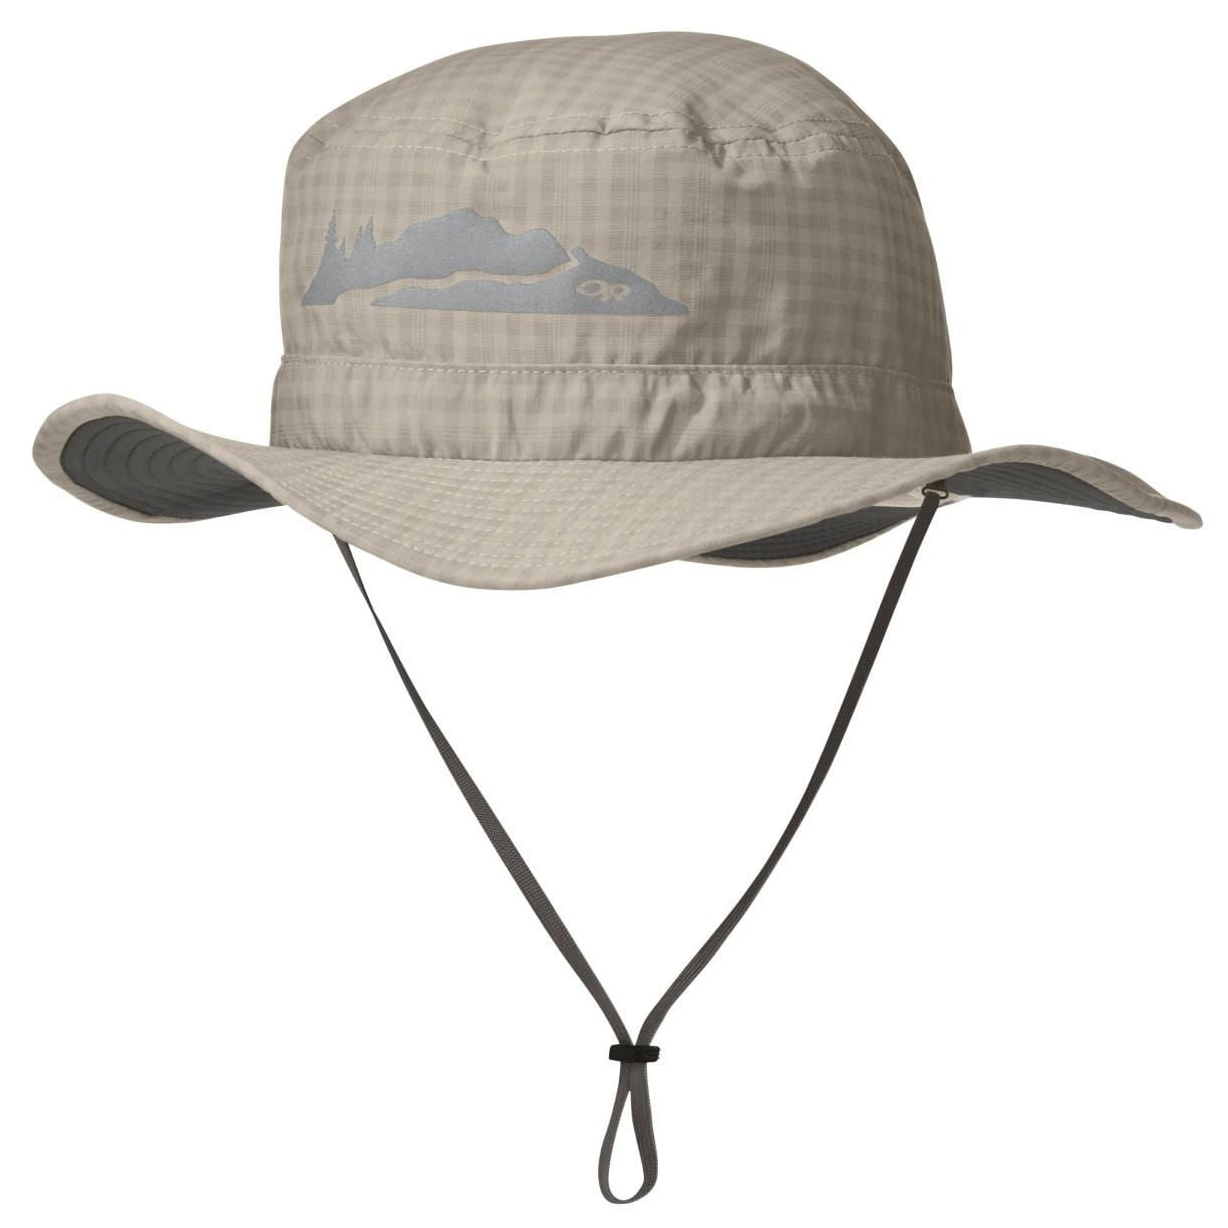 d9feede6 Outdoor Research Helios Sun Hat - Hut Kinder online kaufen ...